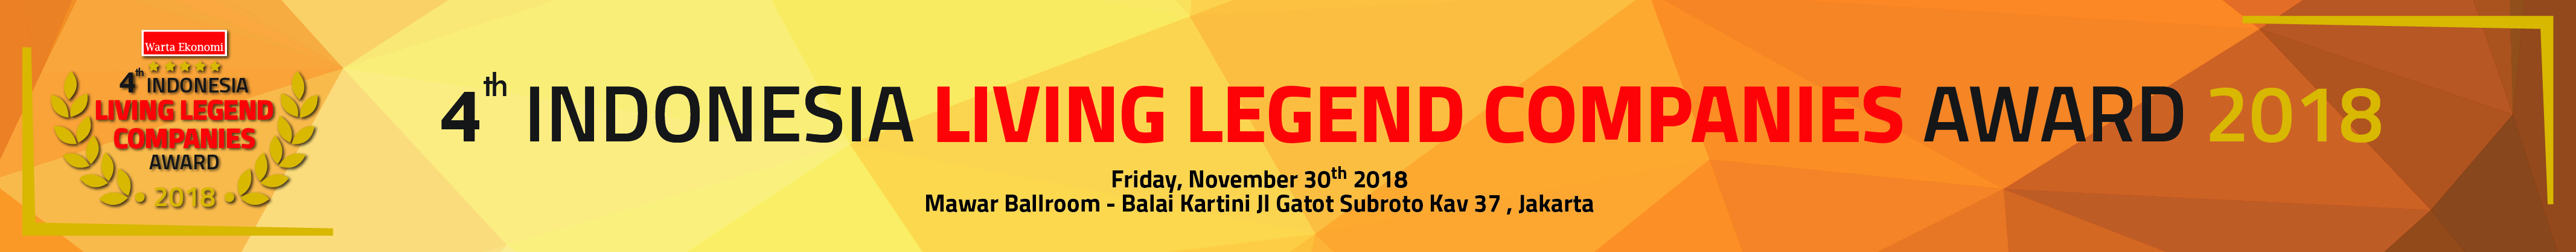 Indonesia Living Legend Companies Award 2018